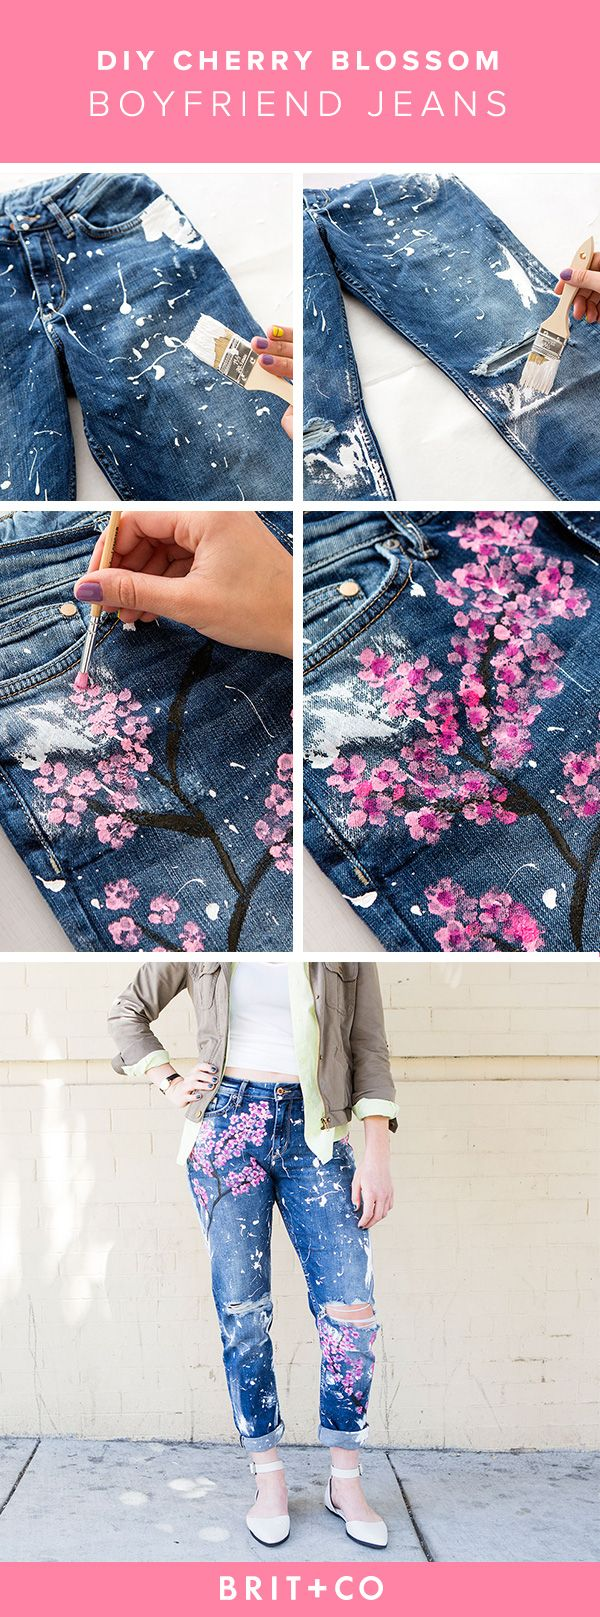 Drawn jeans cherry blossom Acrylic to How $500